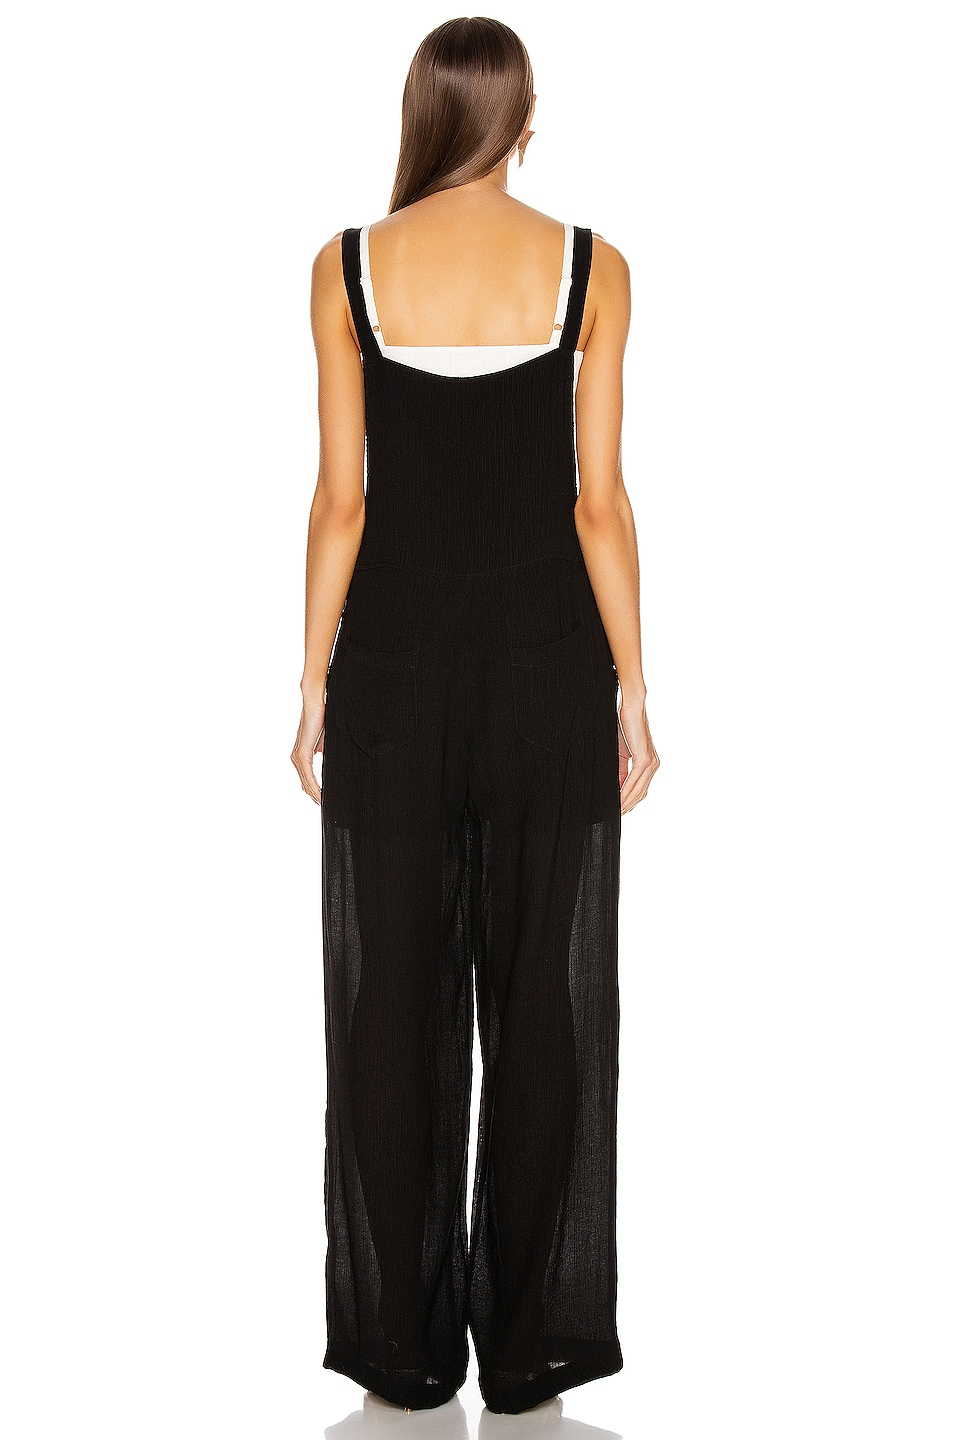 Image 3 of The Range Vapor Voile Overalls in Faded Black